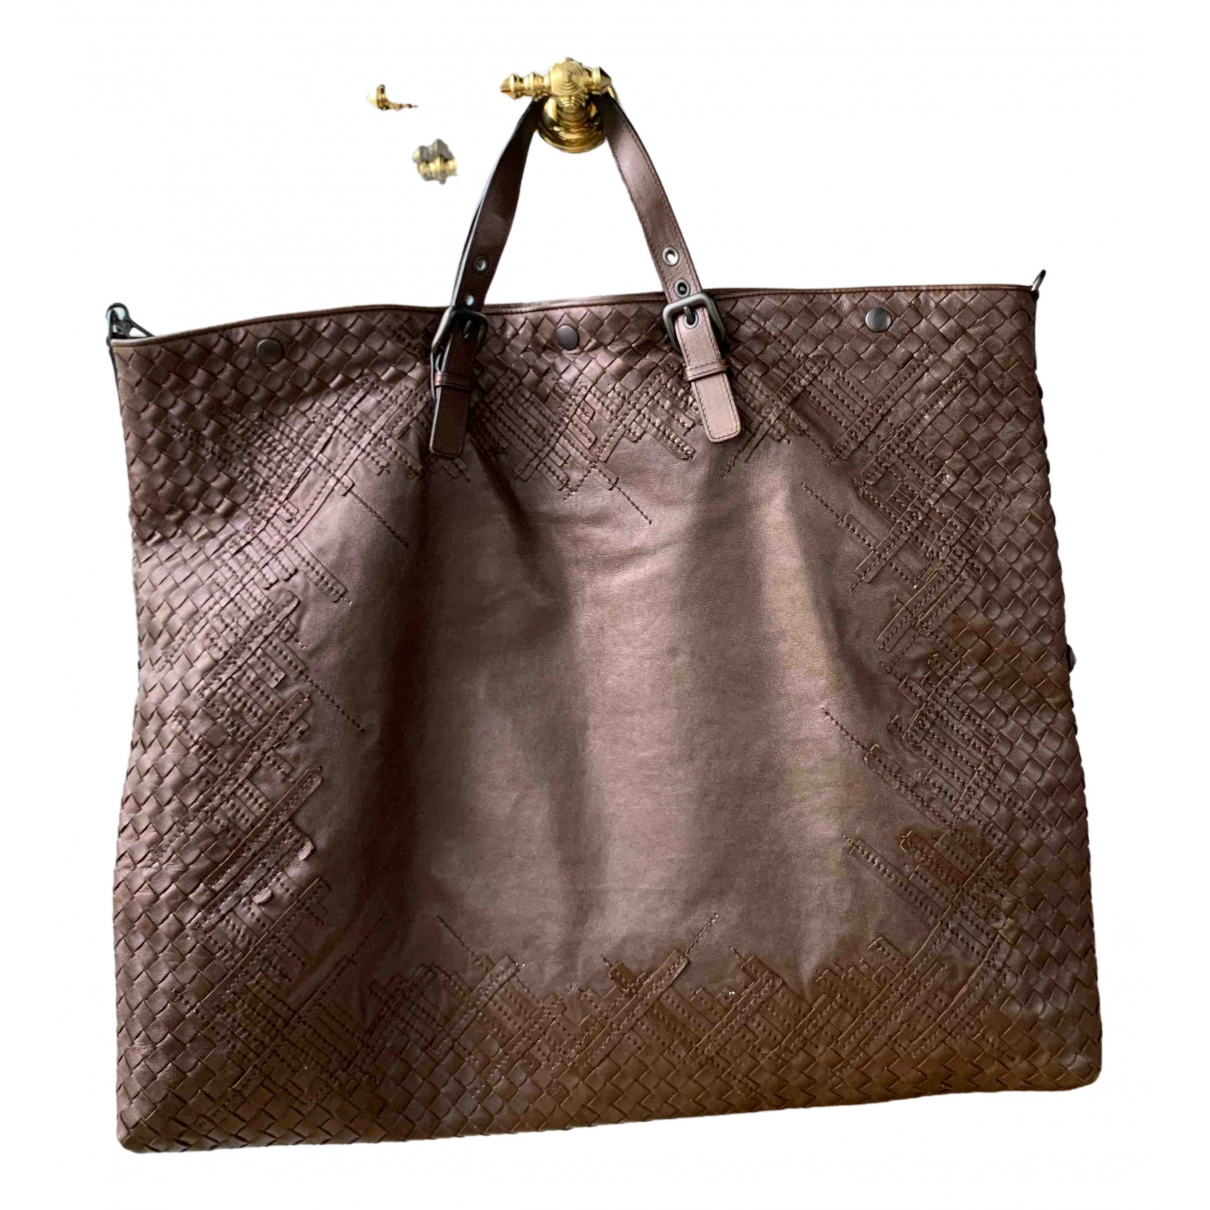 Bottega Veneta N Brown Leather handbag for Women N